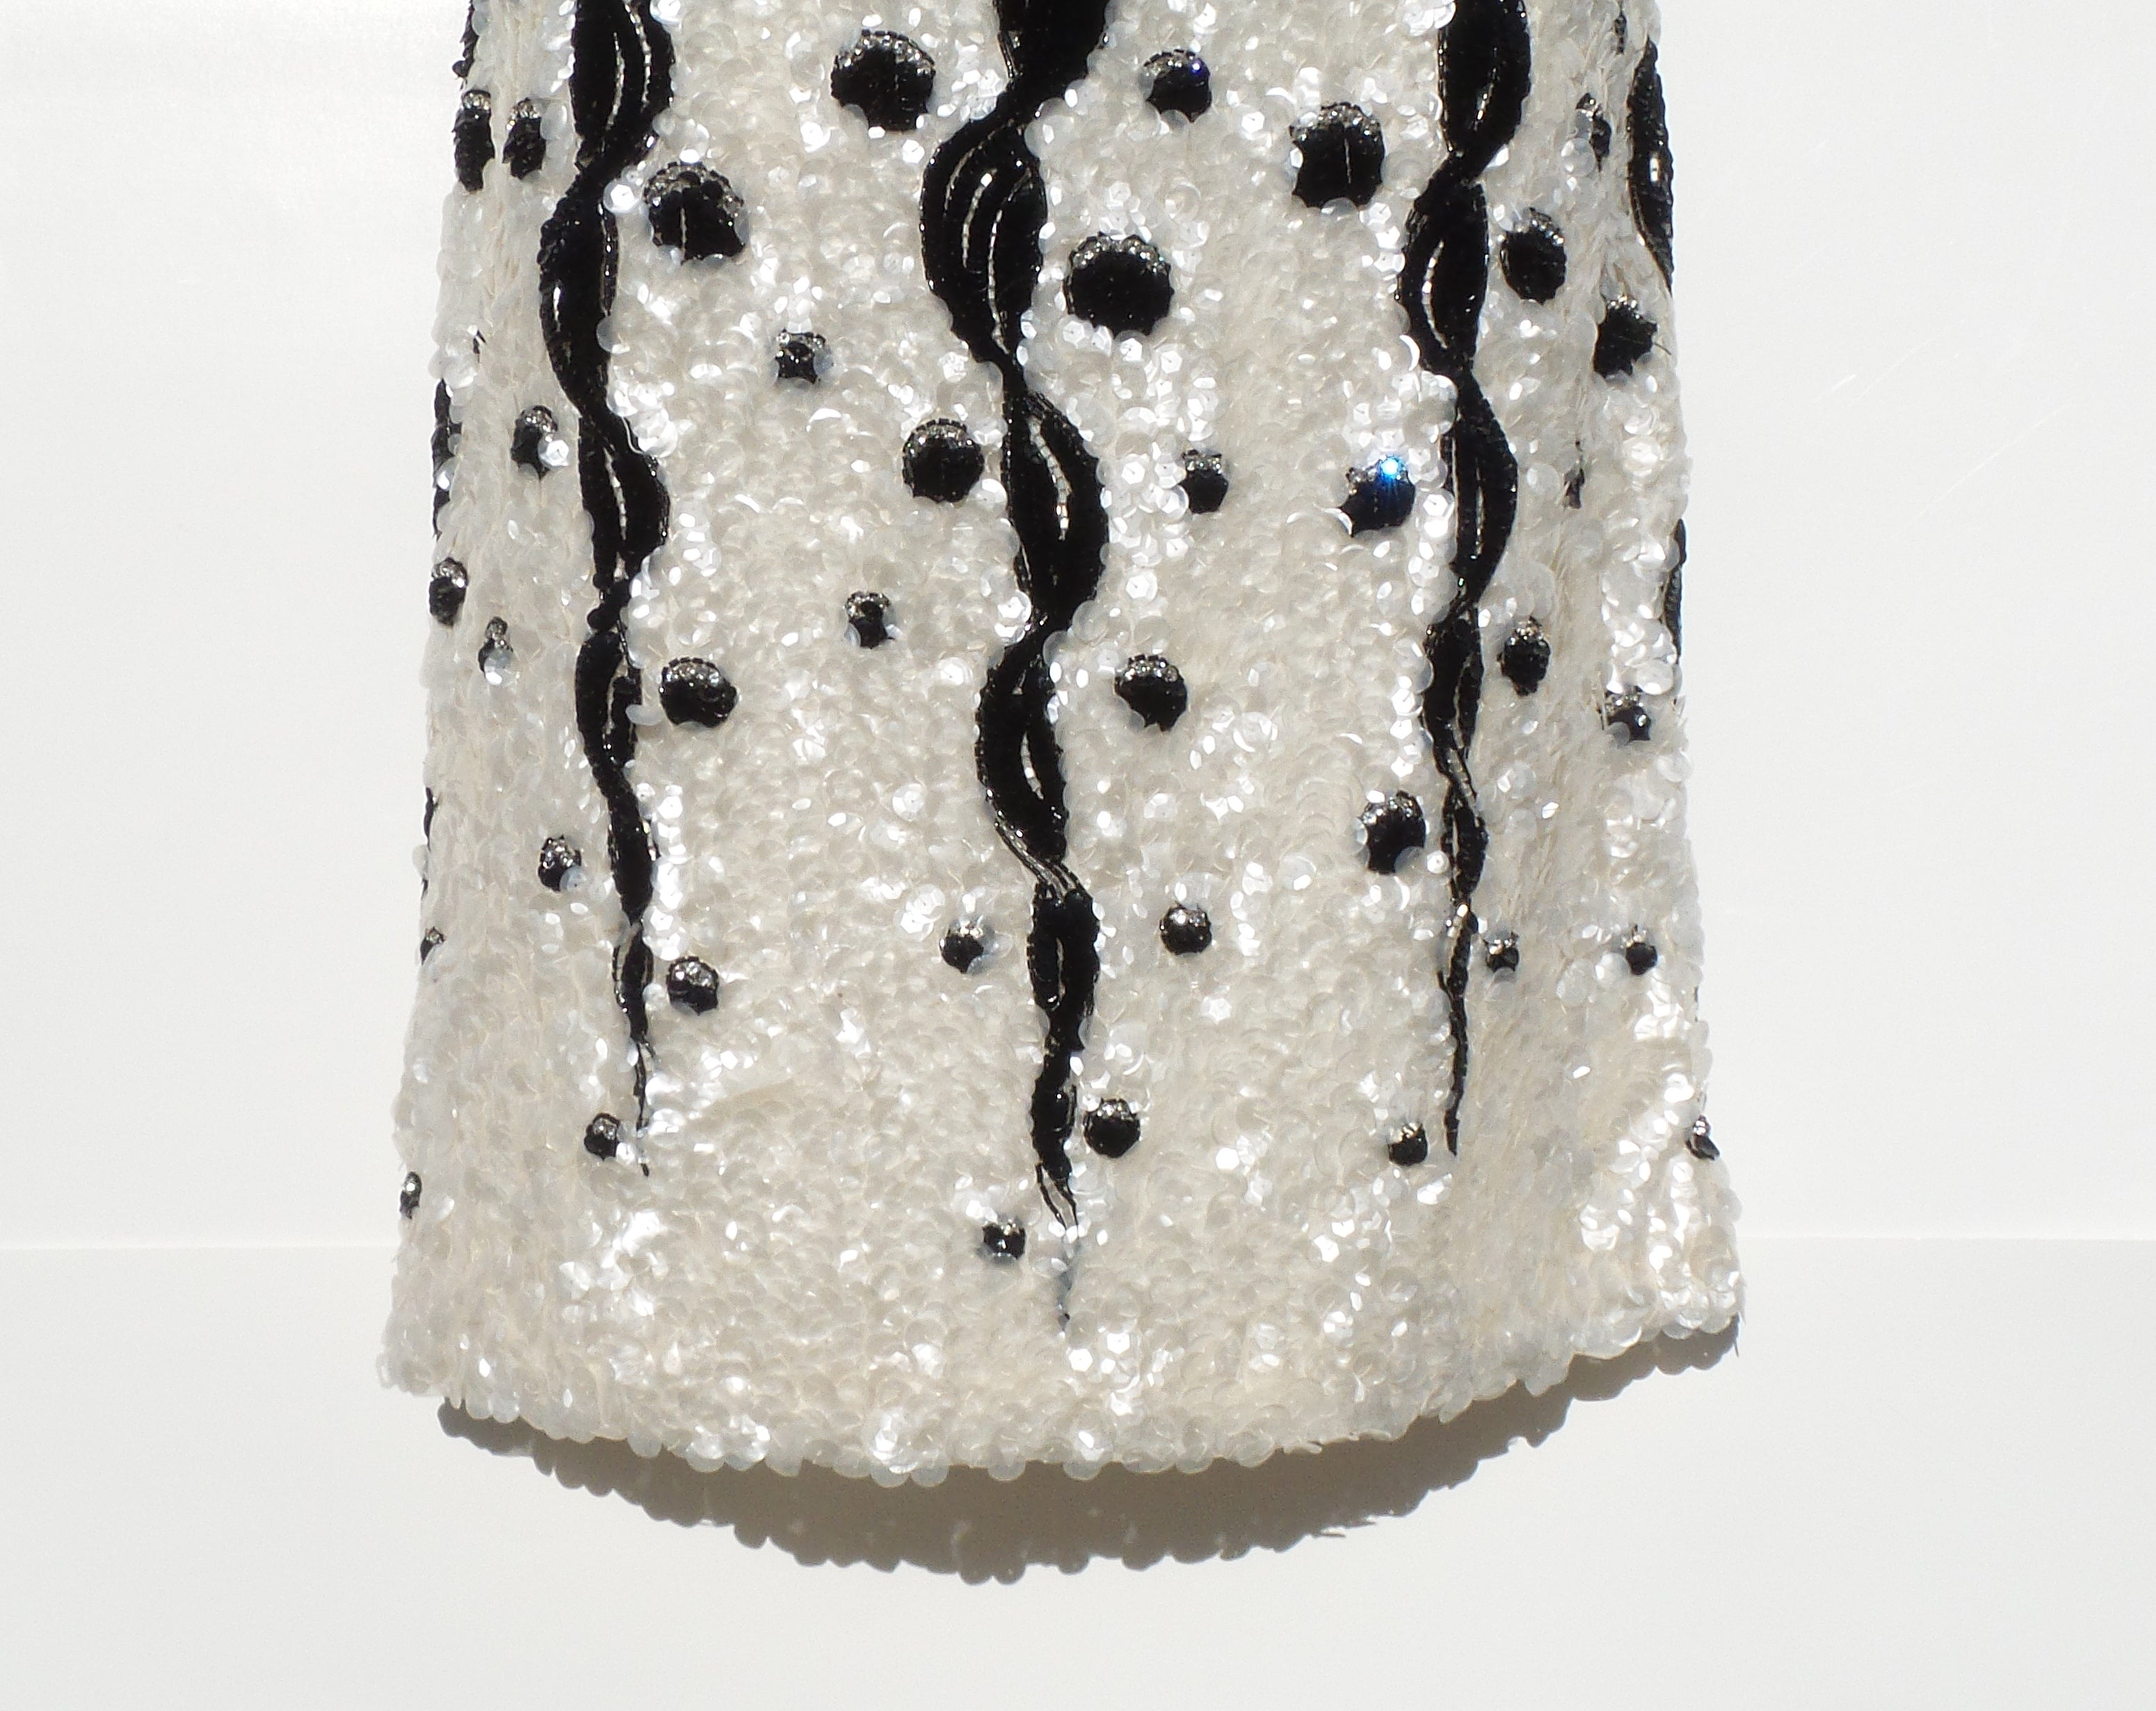 'Sold' CHANEL Métiers d'Art 2005 Ivory Iridescent Sequin Black Beaded Crystal Skirt 38